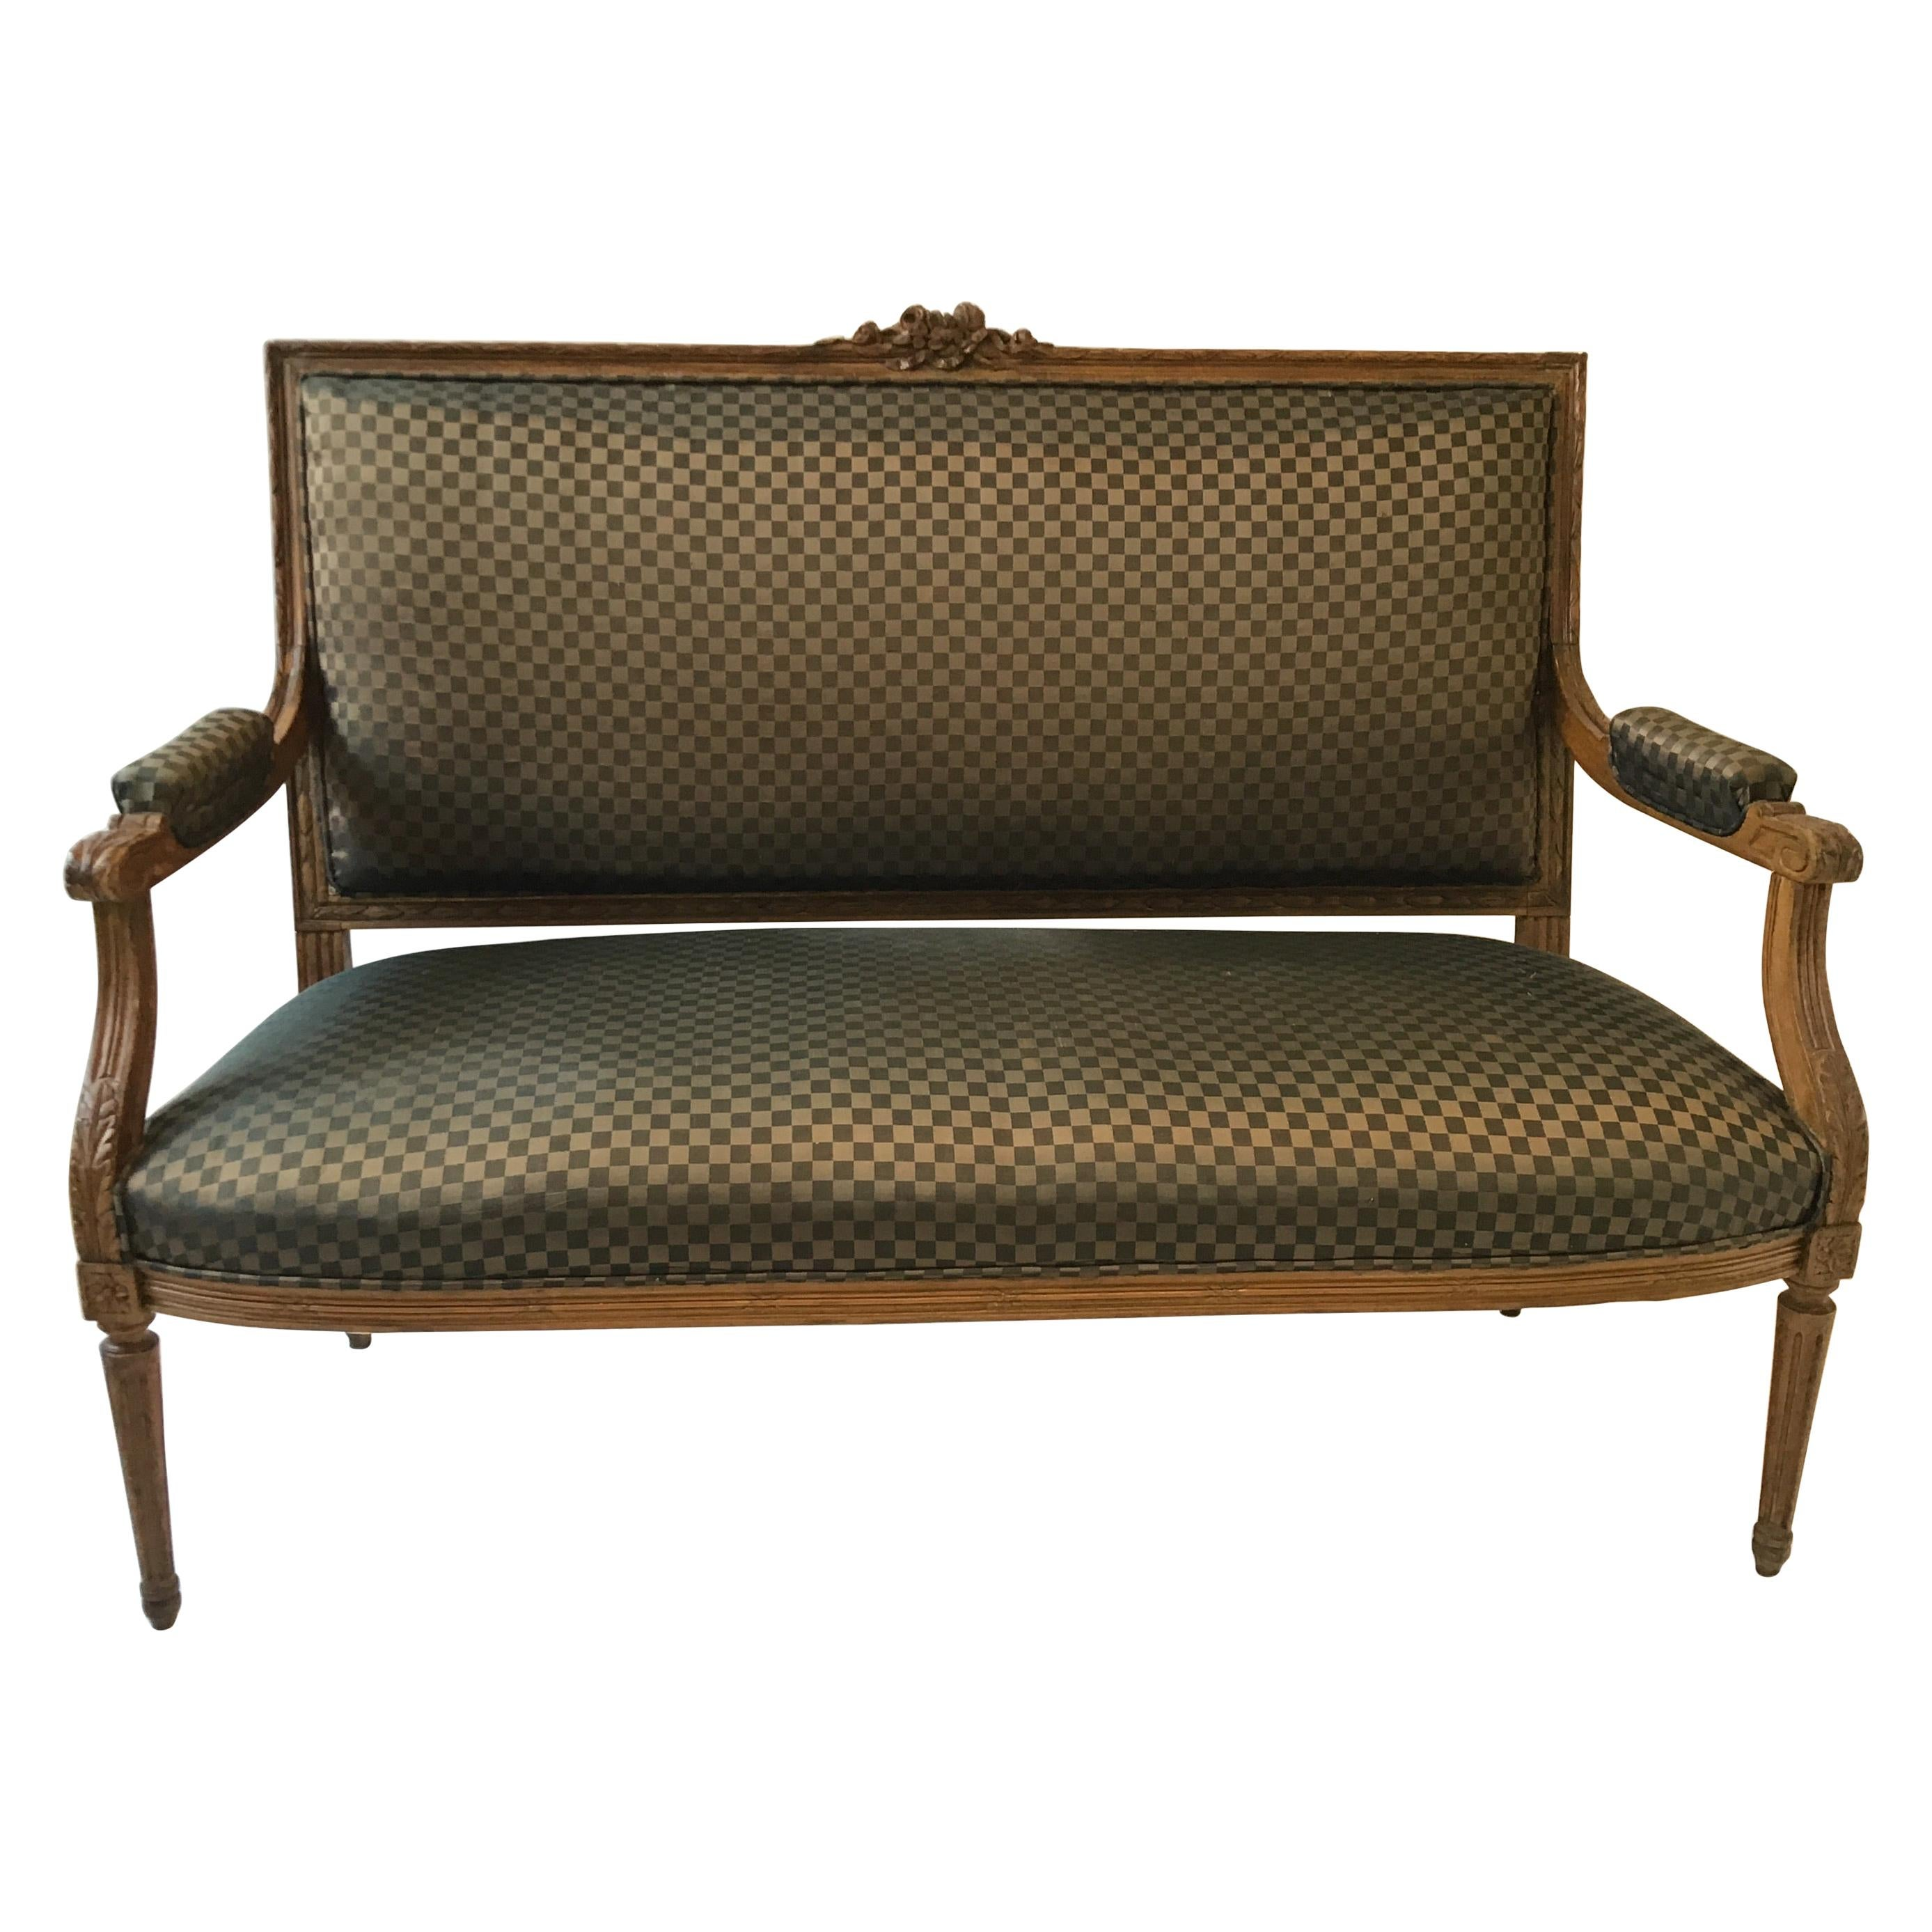 1930s Carved Wood Louis XVI French Settee